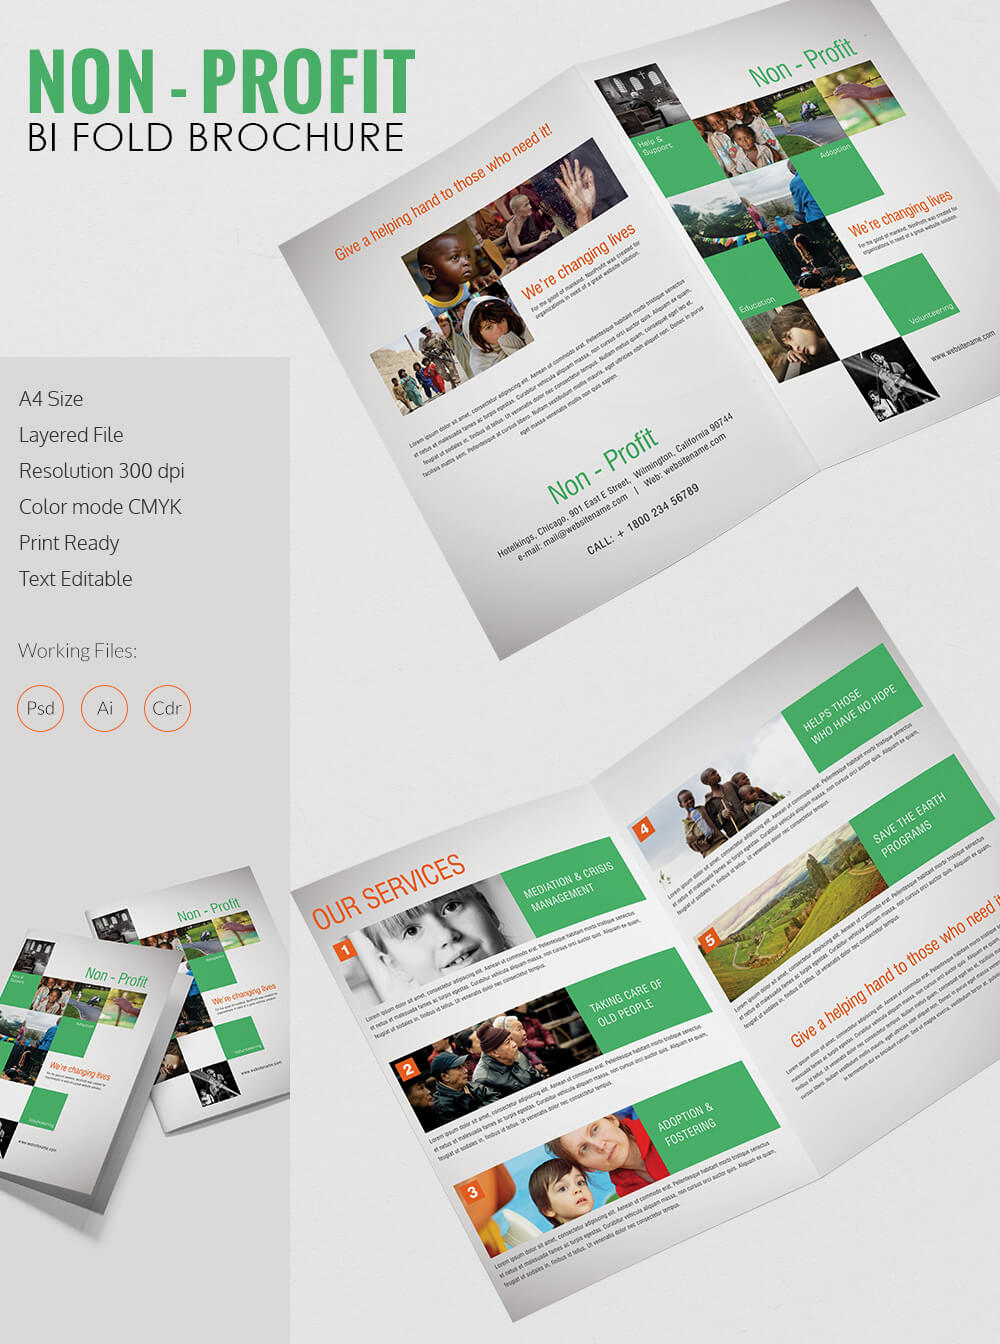 001 Bi Fold Brochure Template Free Ideas Wondrous Download with Microsoft Word Brochure Template Free